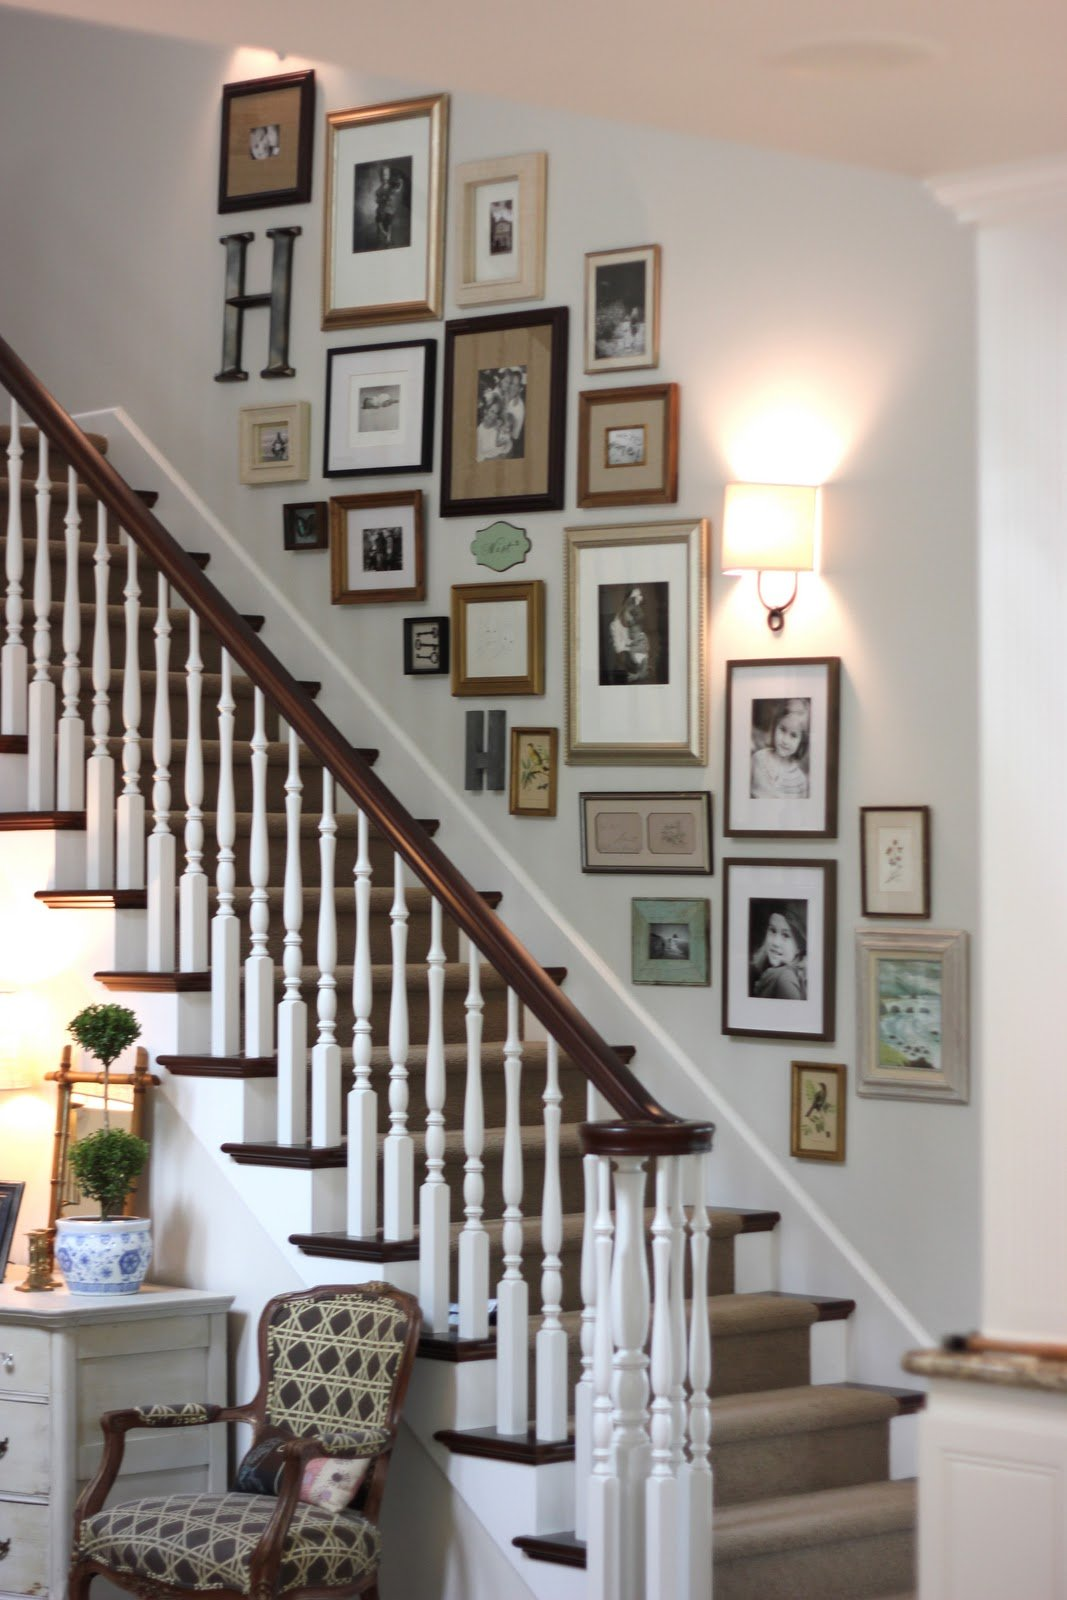 Groovy Decorating A Staircase Ideas Inspiration Tidbitstwine Largest Home Design Picture Inspirations Pitcheantrous